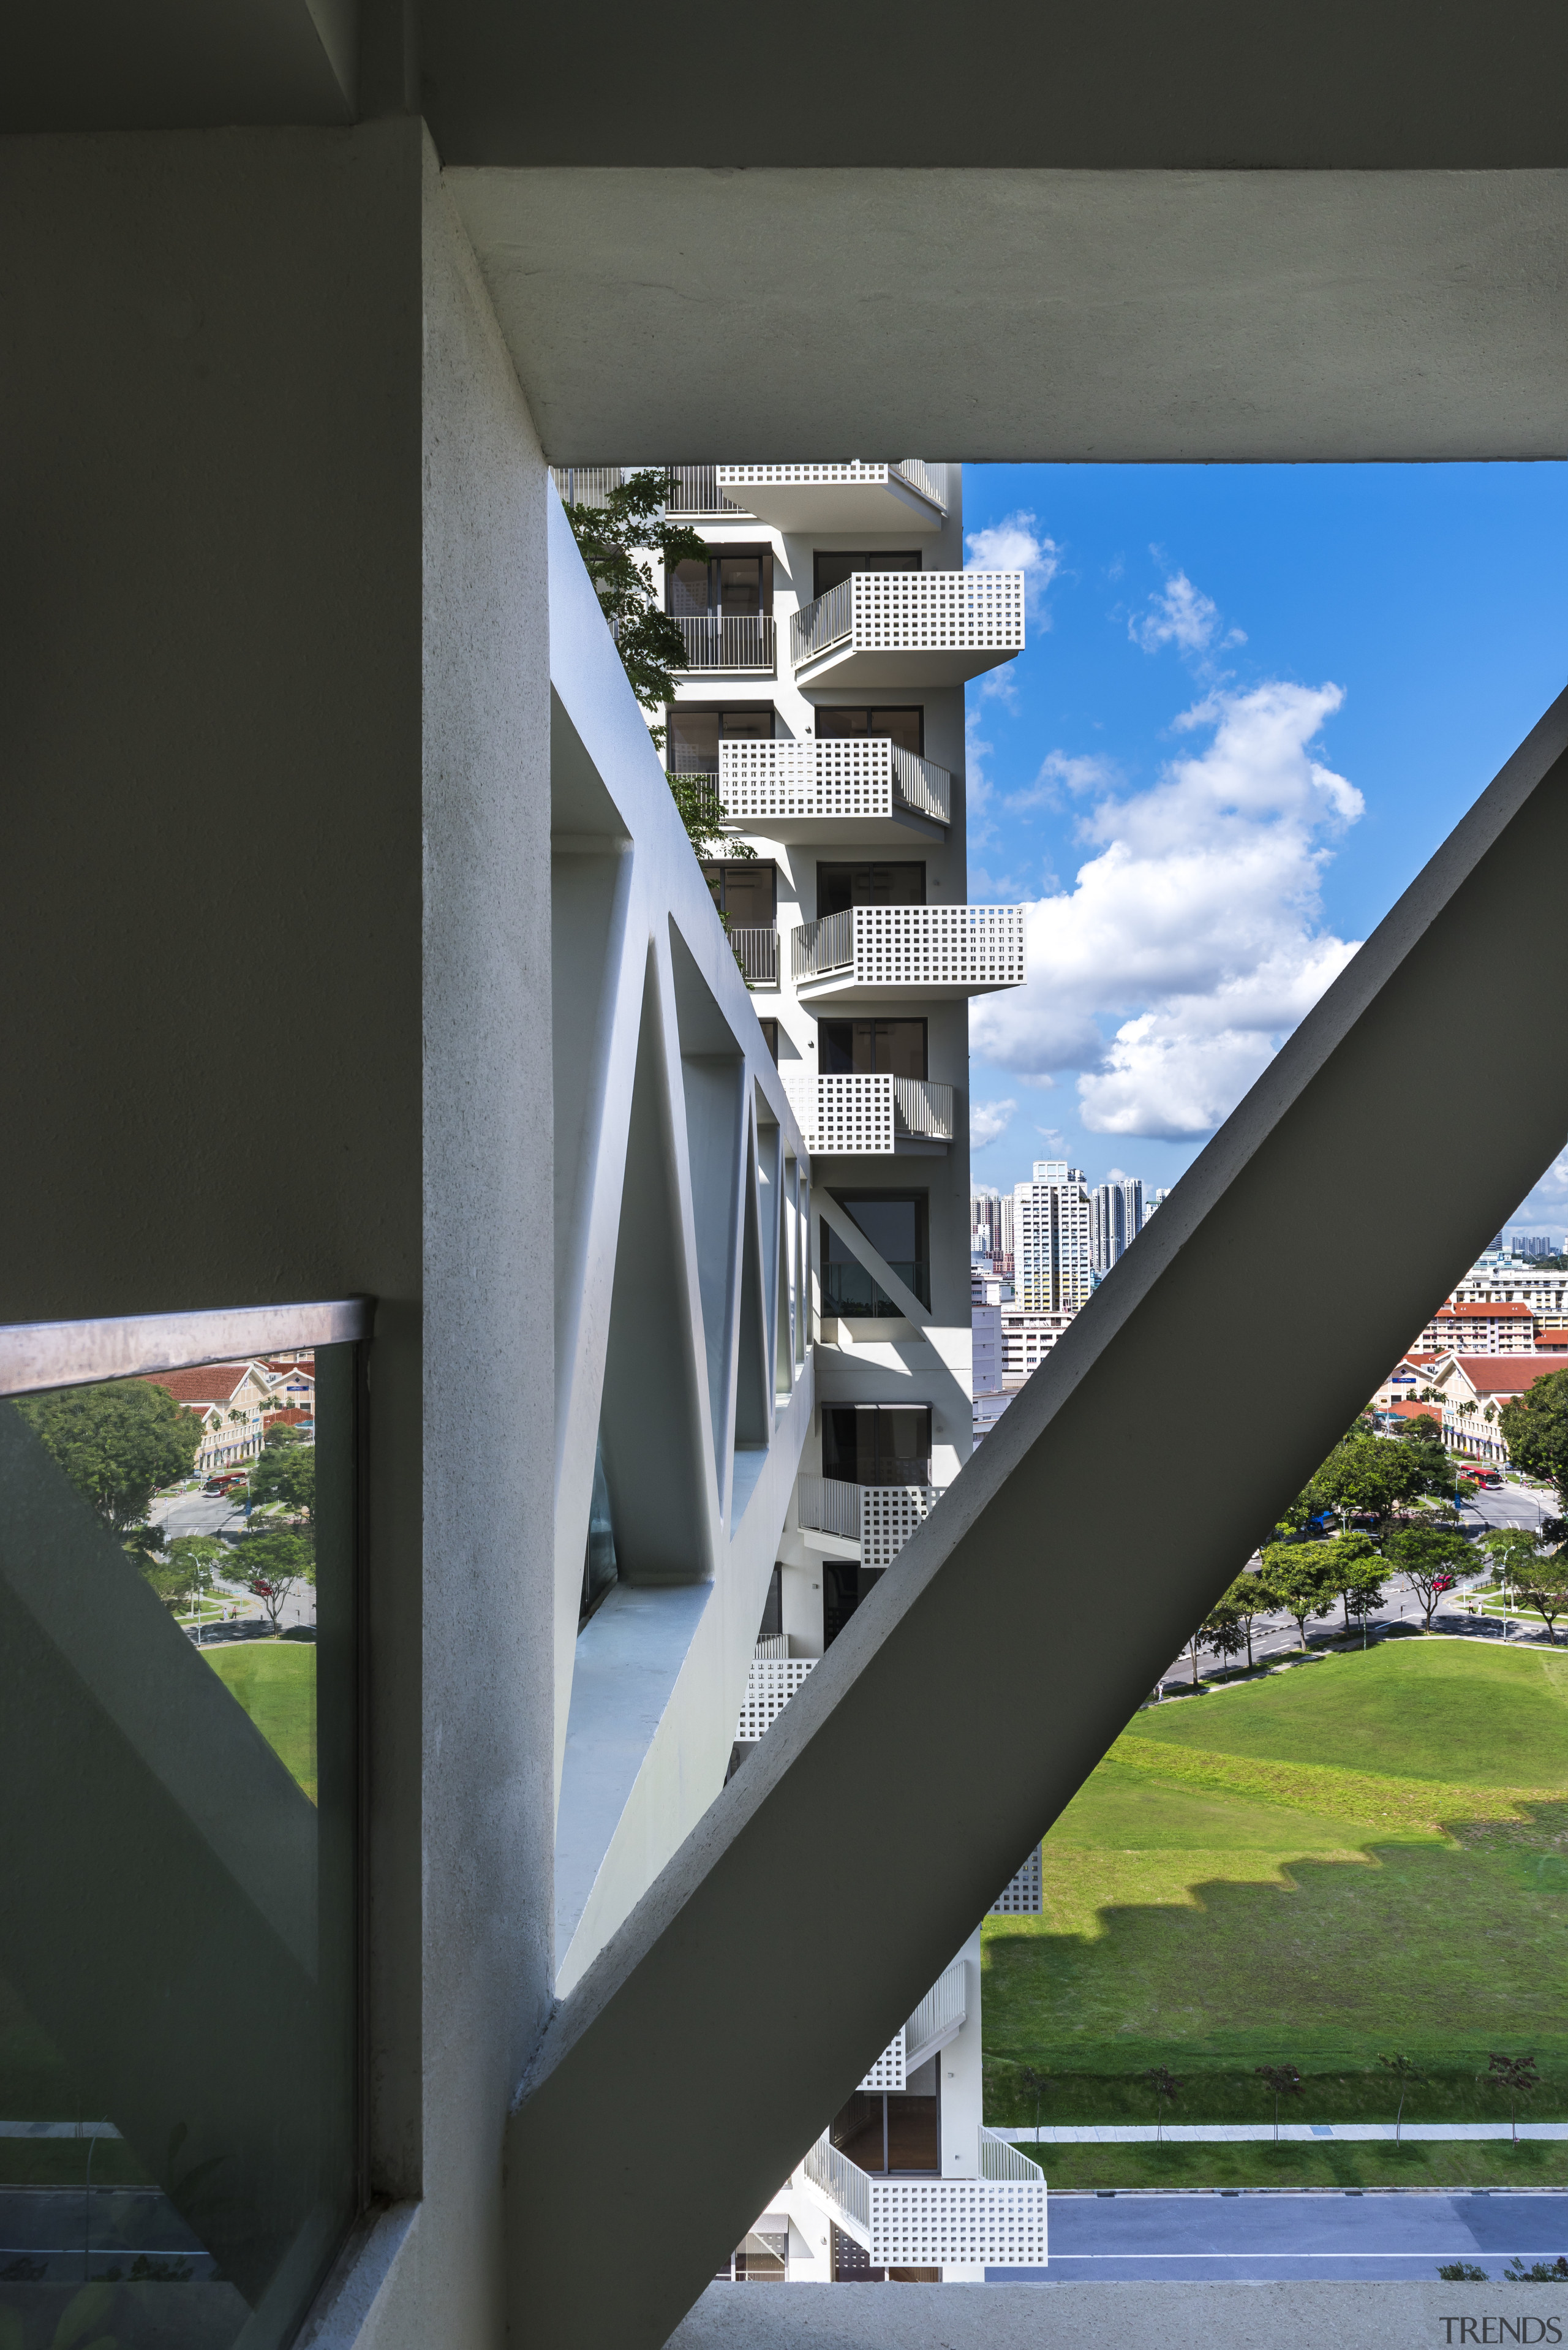 While the stepped structure, large balconies and sky architecture, building, daylighting, facade, fixed link, glass, sky, stairs, structure, black